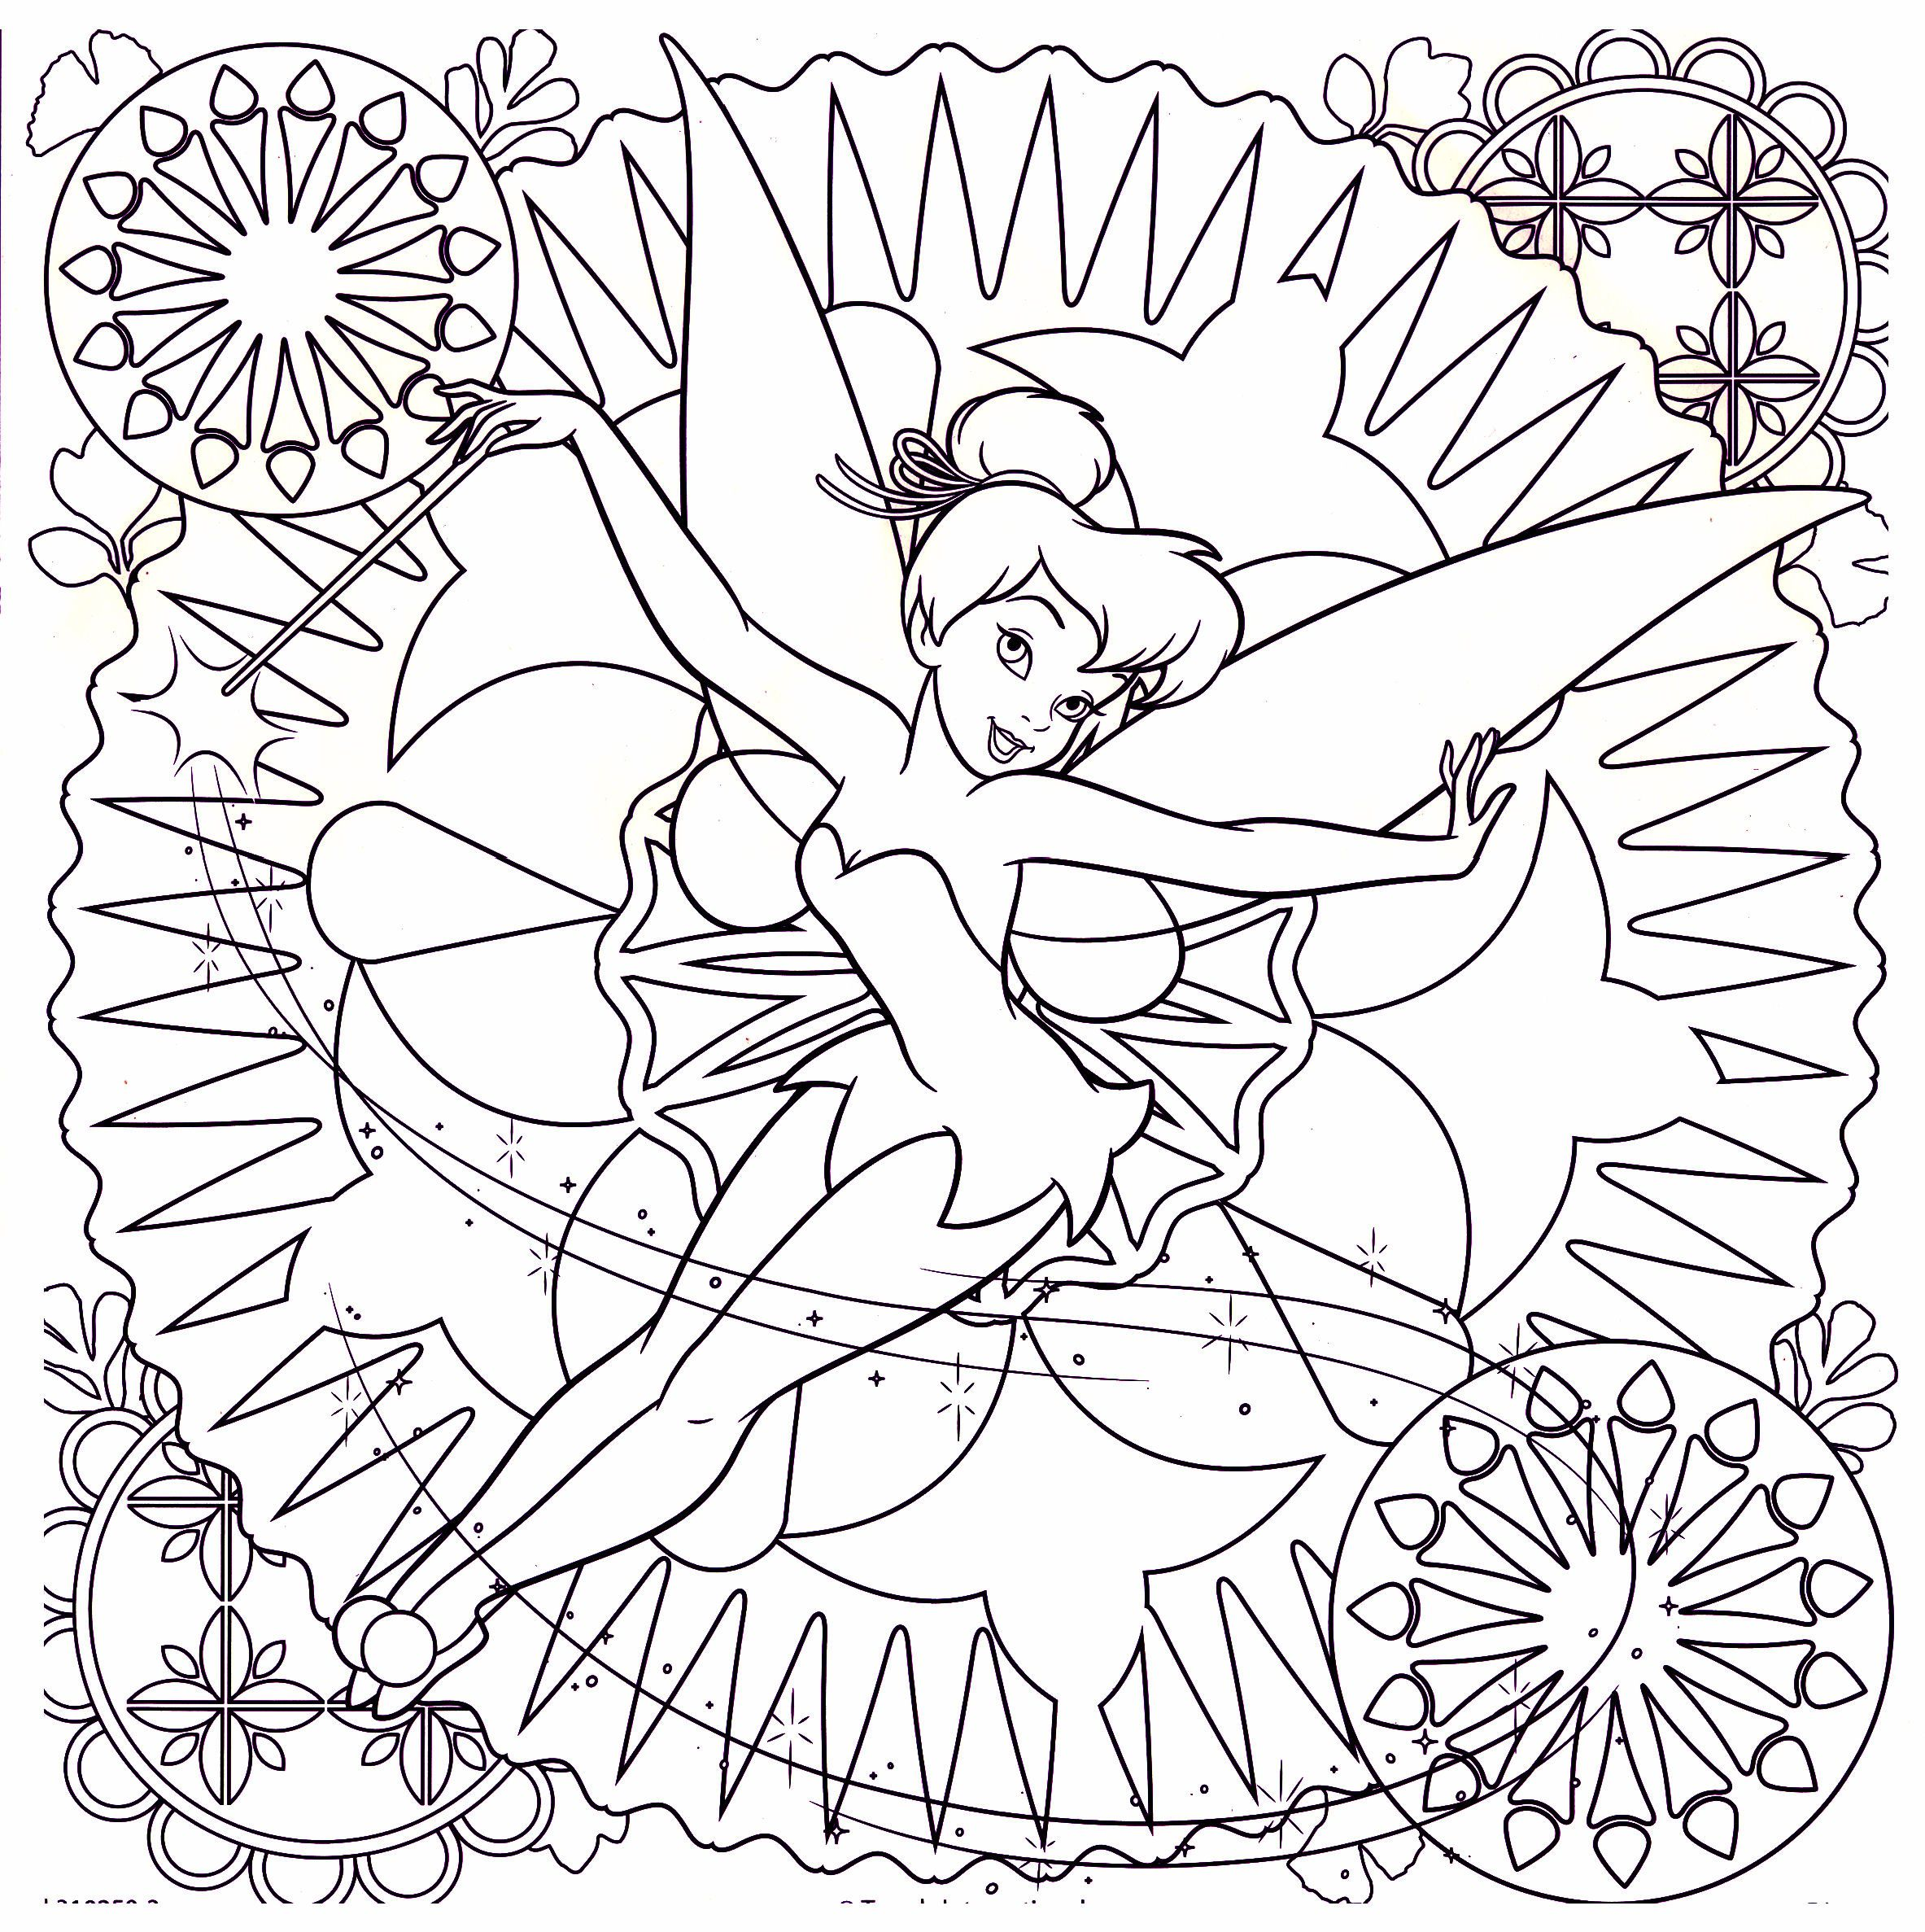 Tinkerbell Difficult Coloring Page Tinkerbell Coloring Pages Butterfly Coloring Page Disney Coloring Pages